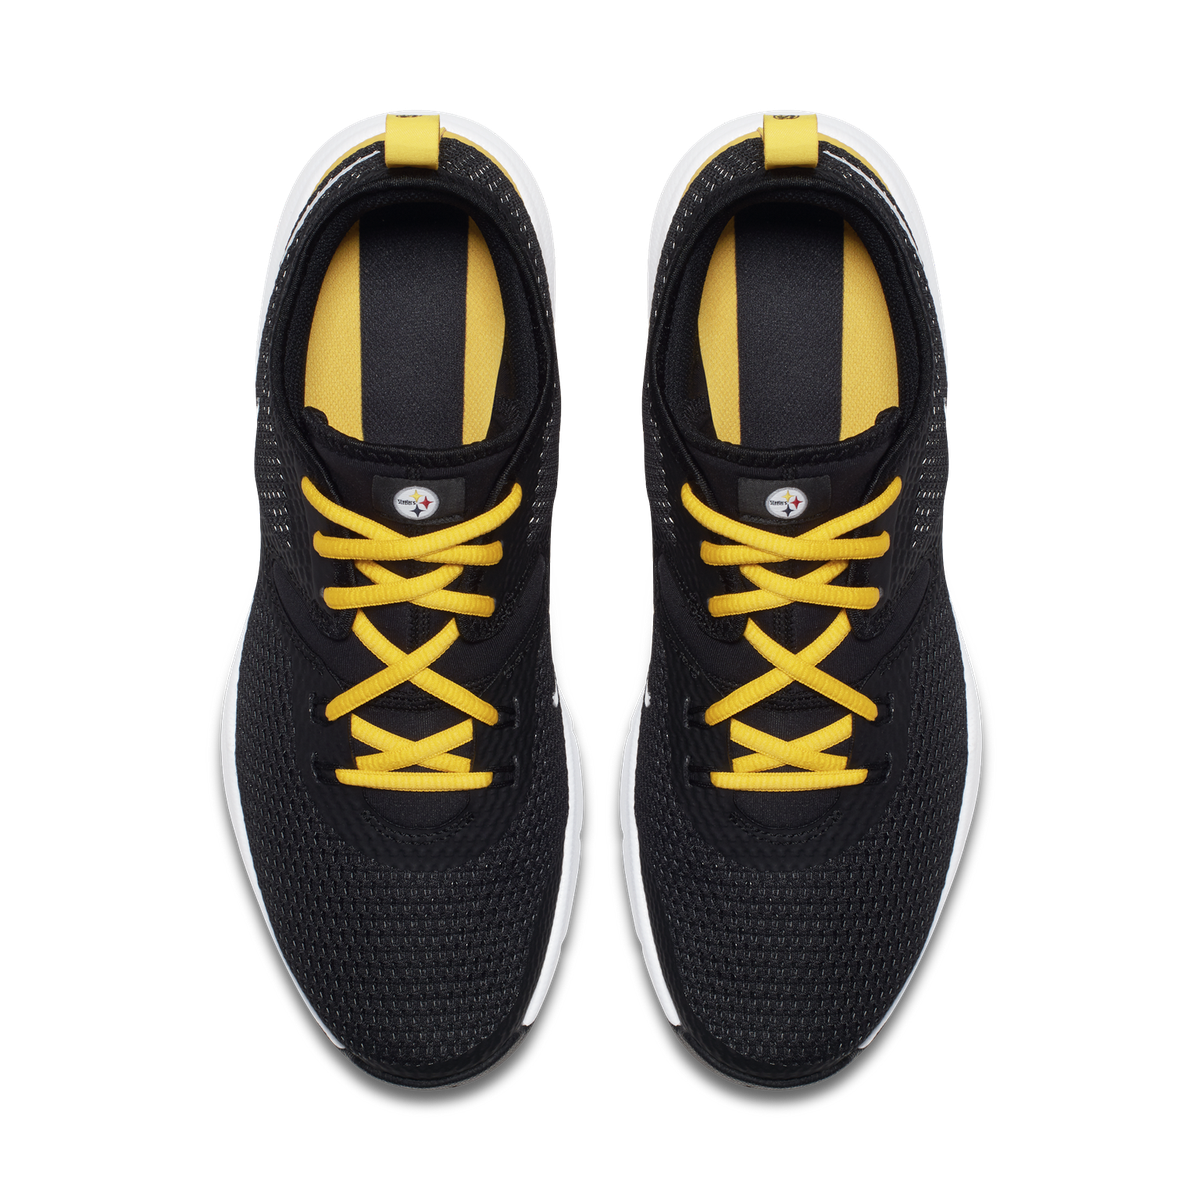 6c810a033ea0 Nike releases new NFL-themed Air Max Typha 2 shoe collection ...